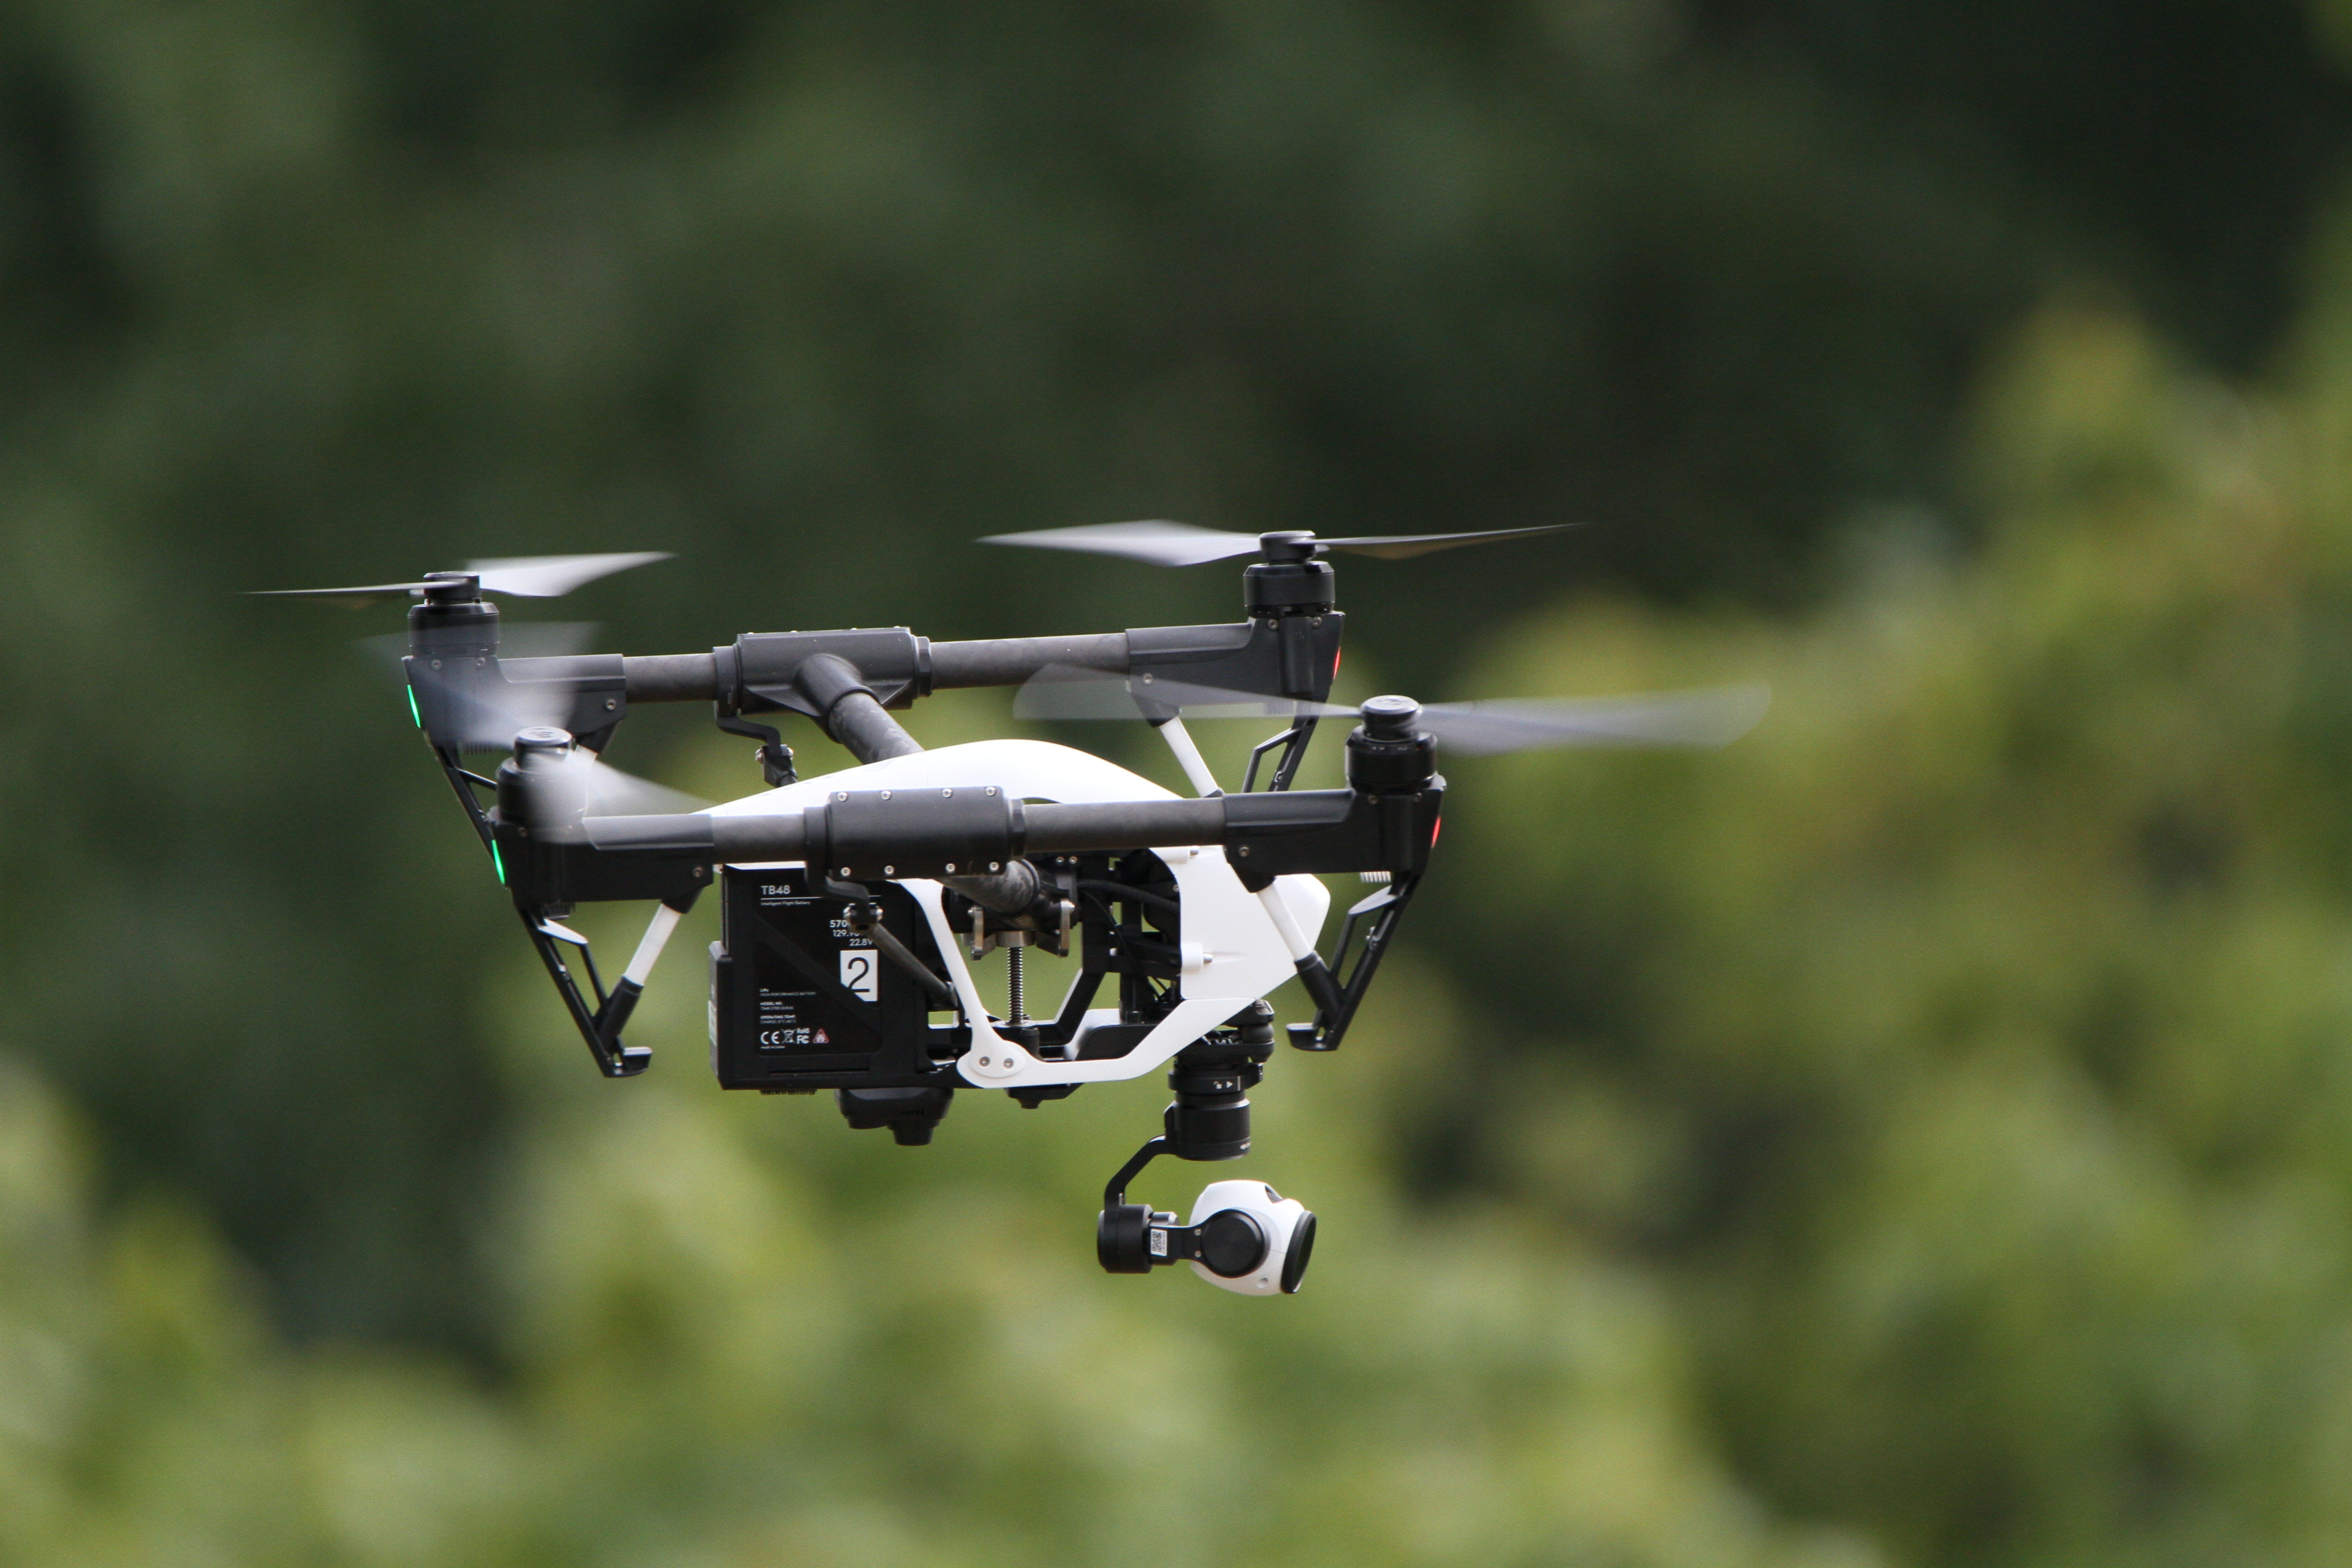 DJI, 3DR, Parrot and GoPro form new drone advocacy group